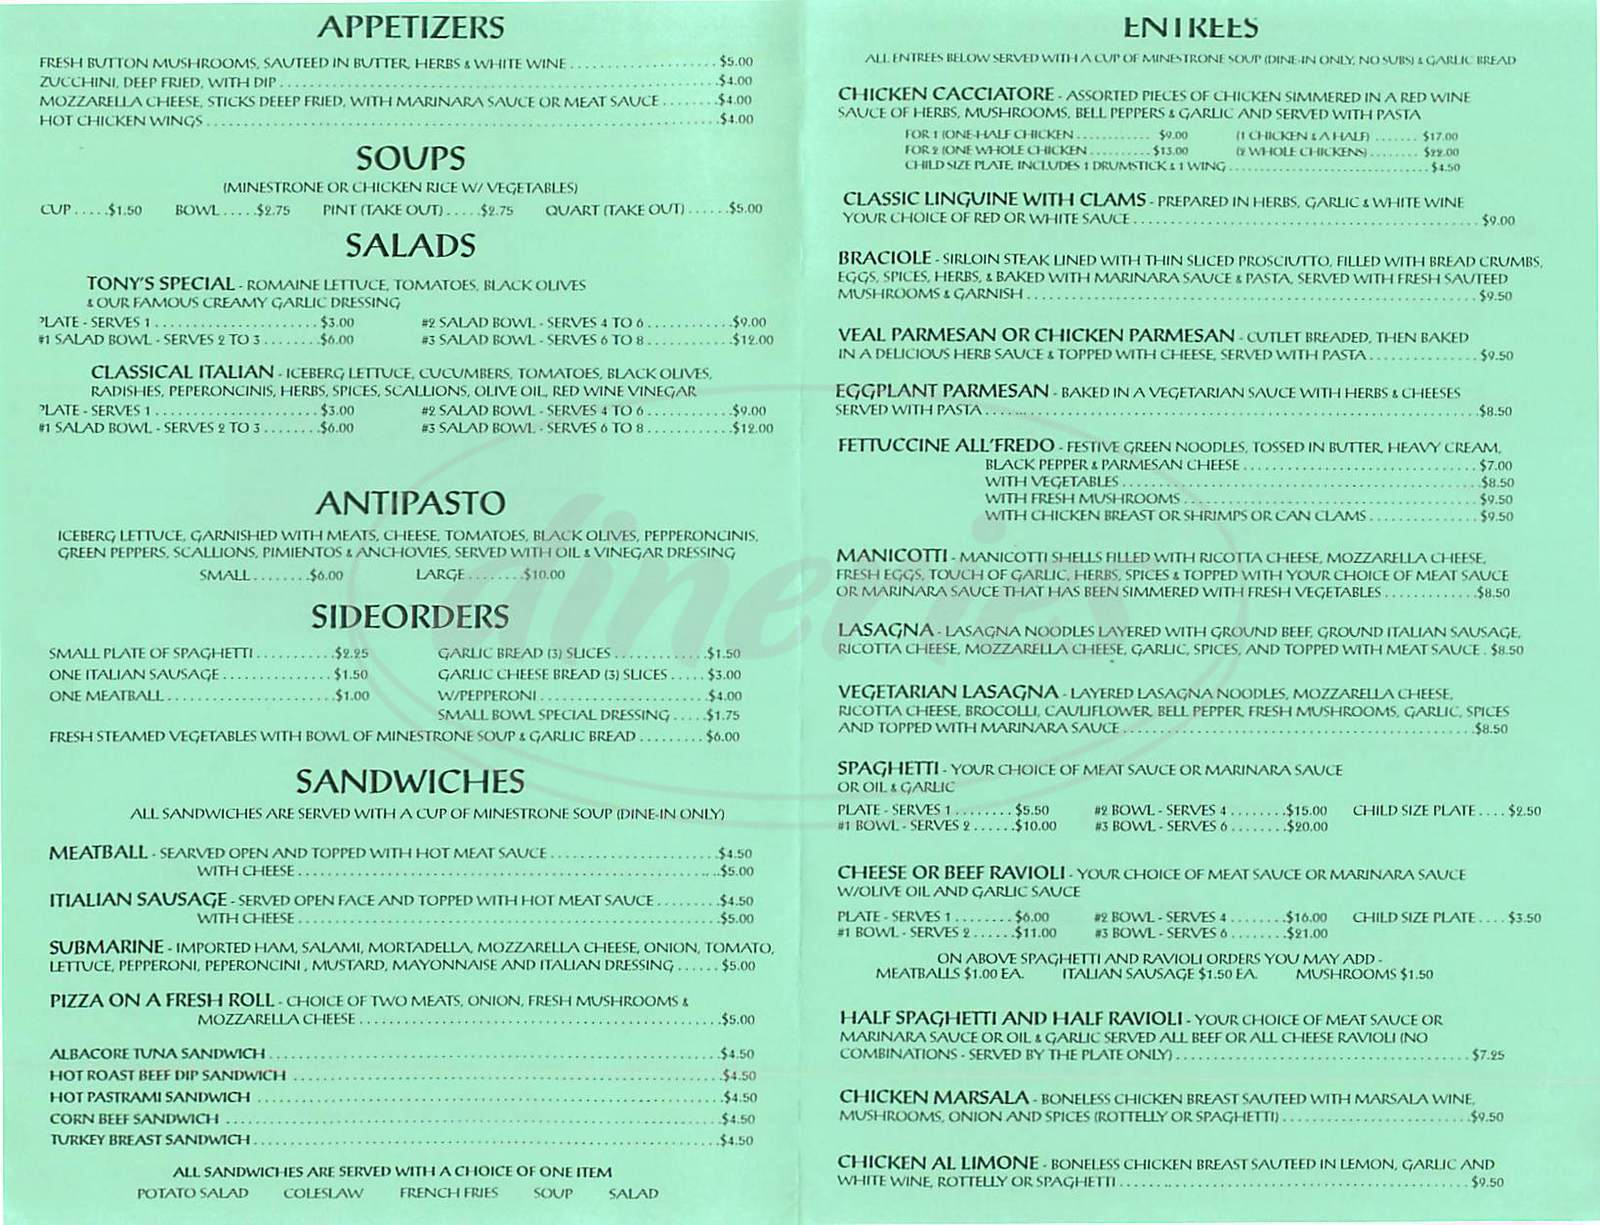 menu for Tony's Italian Food